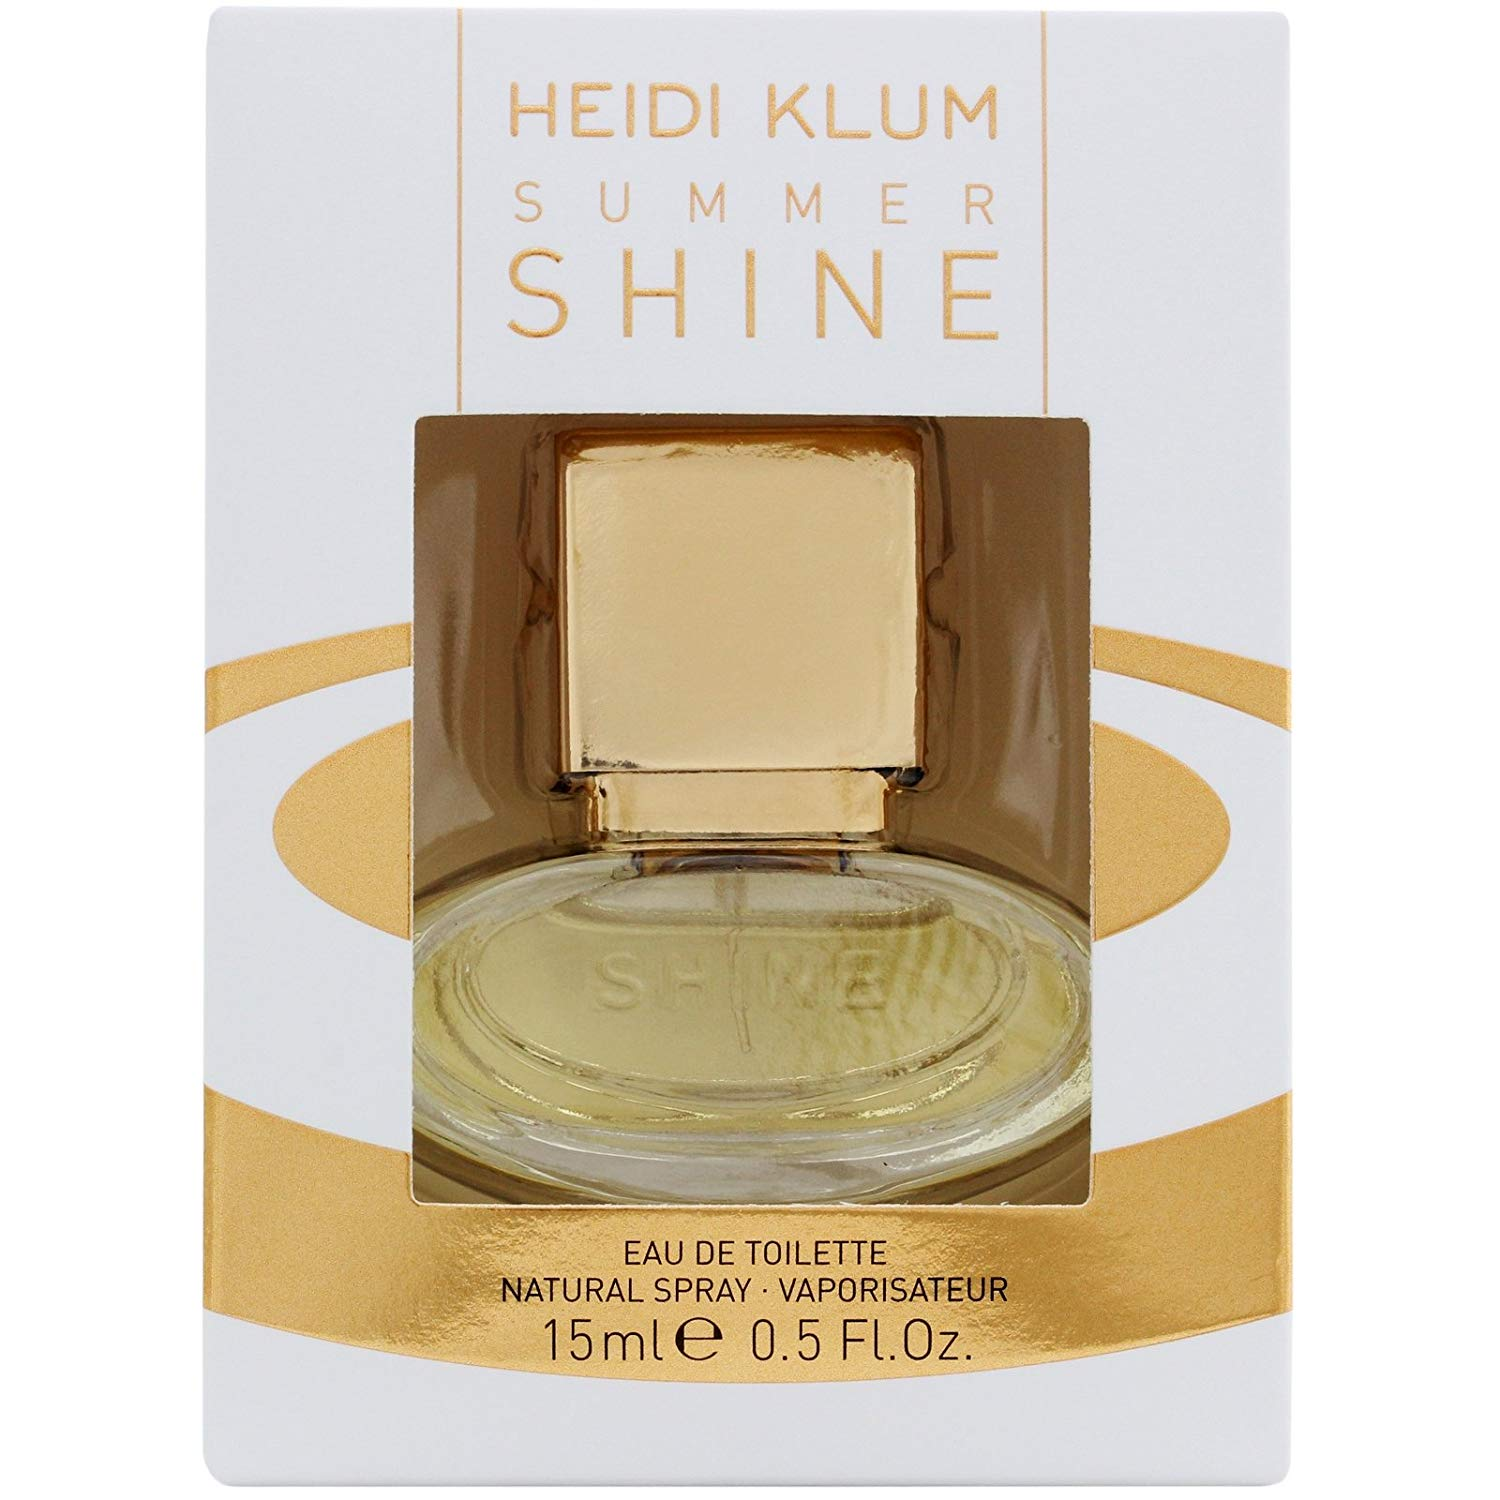 Heidi Klum Summer Shine Eau de Toilette 15 ml